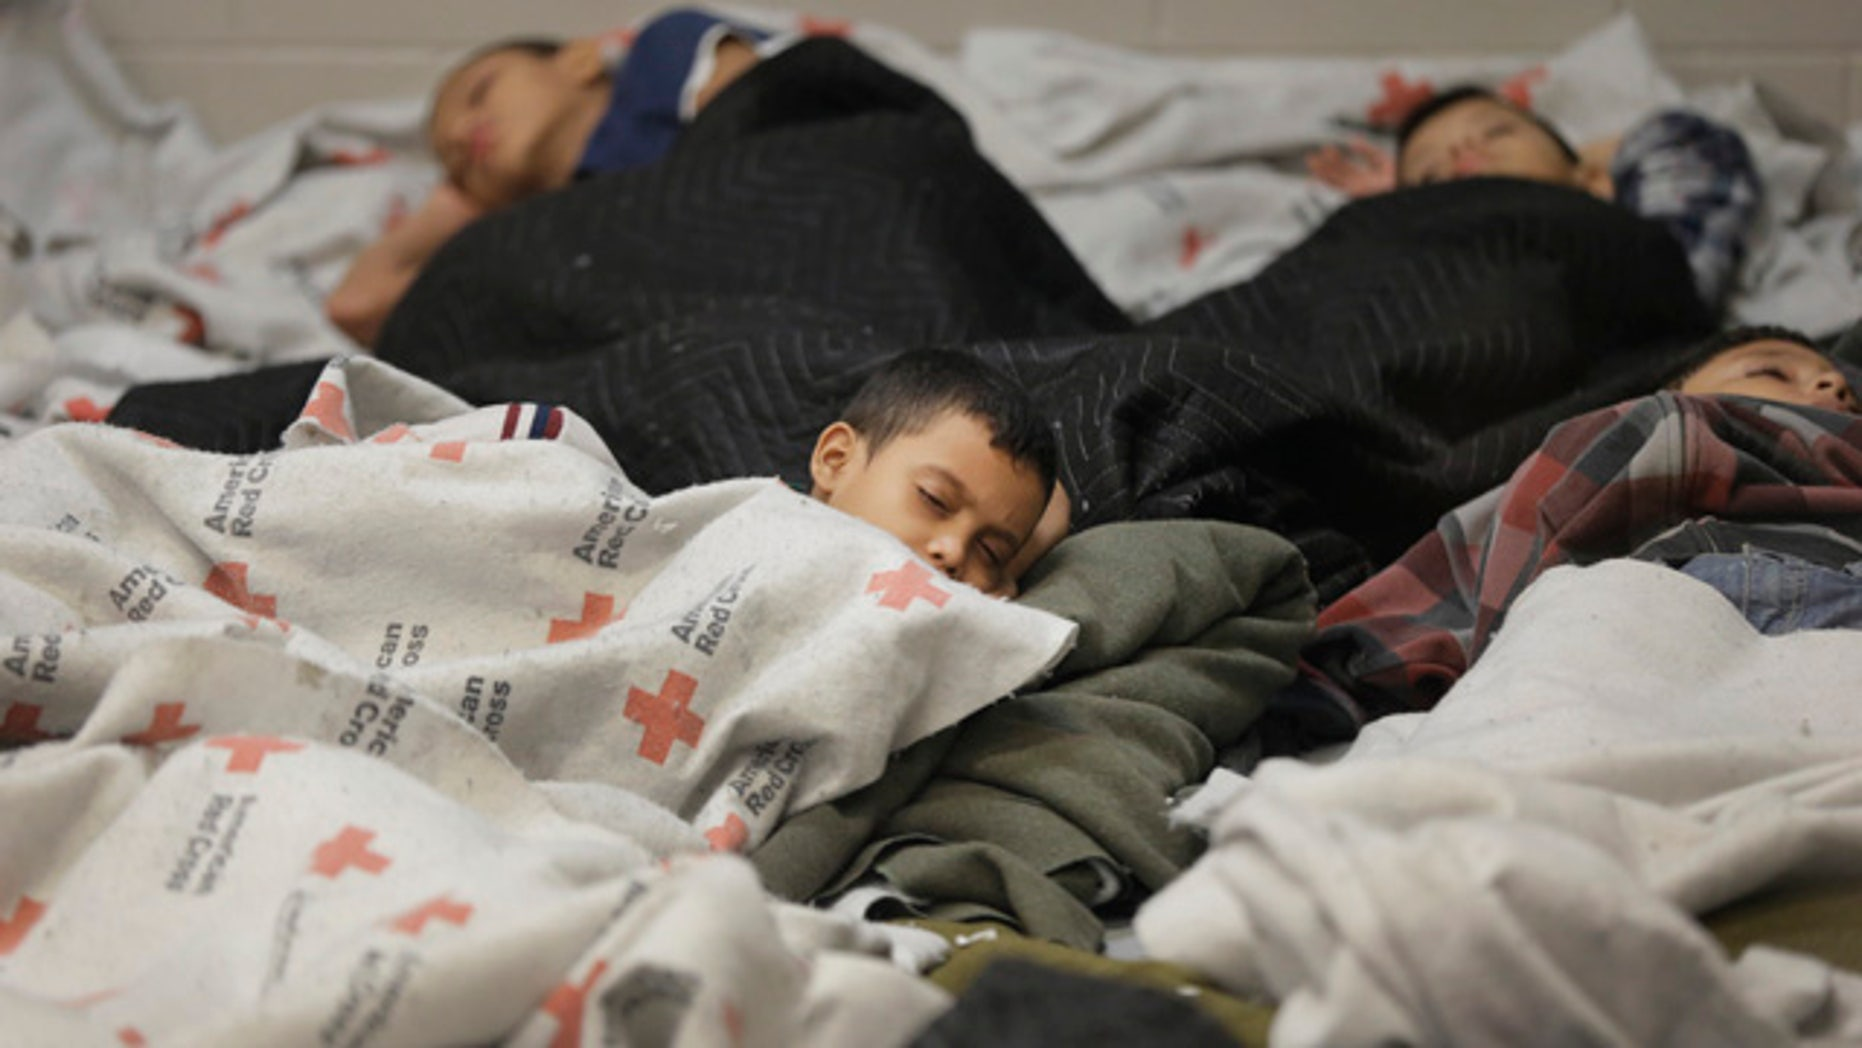 June 18, 2014: Detainees sleep in a holding cell at a U.S. Customs and Border Protection processing facility in Brownsville,Texas. (AP Photo/Eric Gay, Pool)